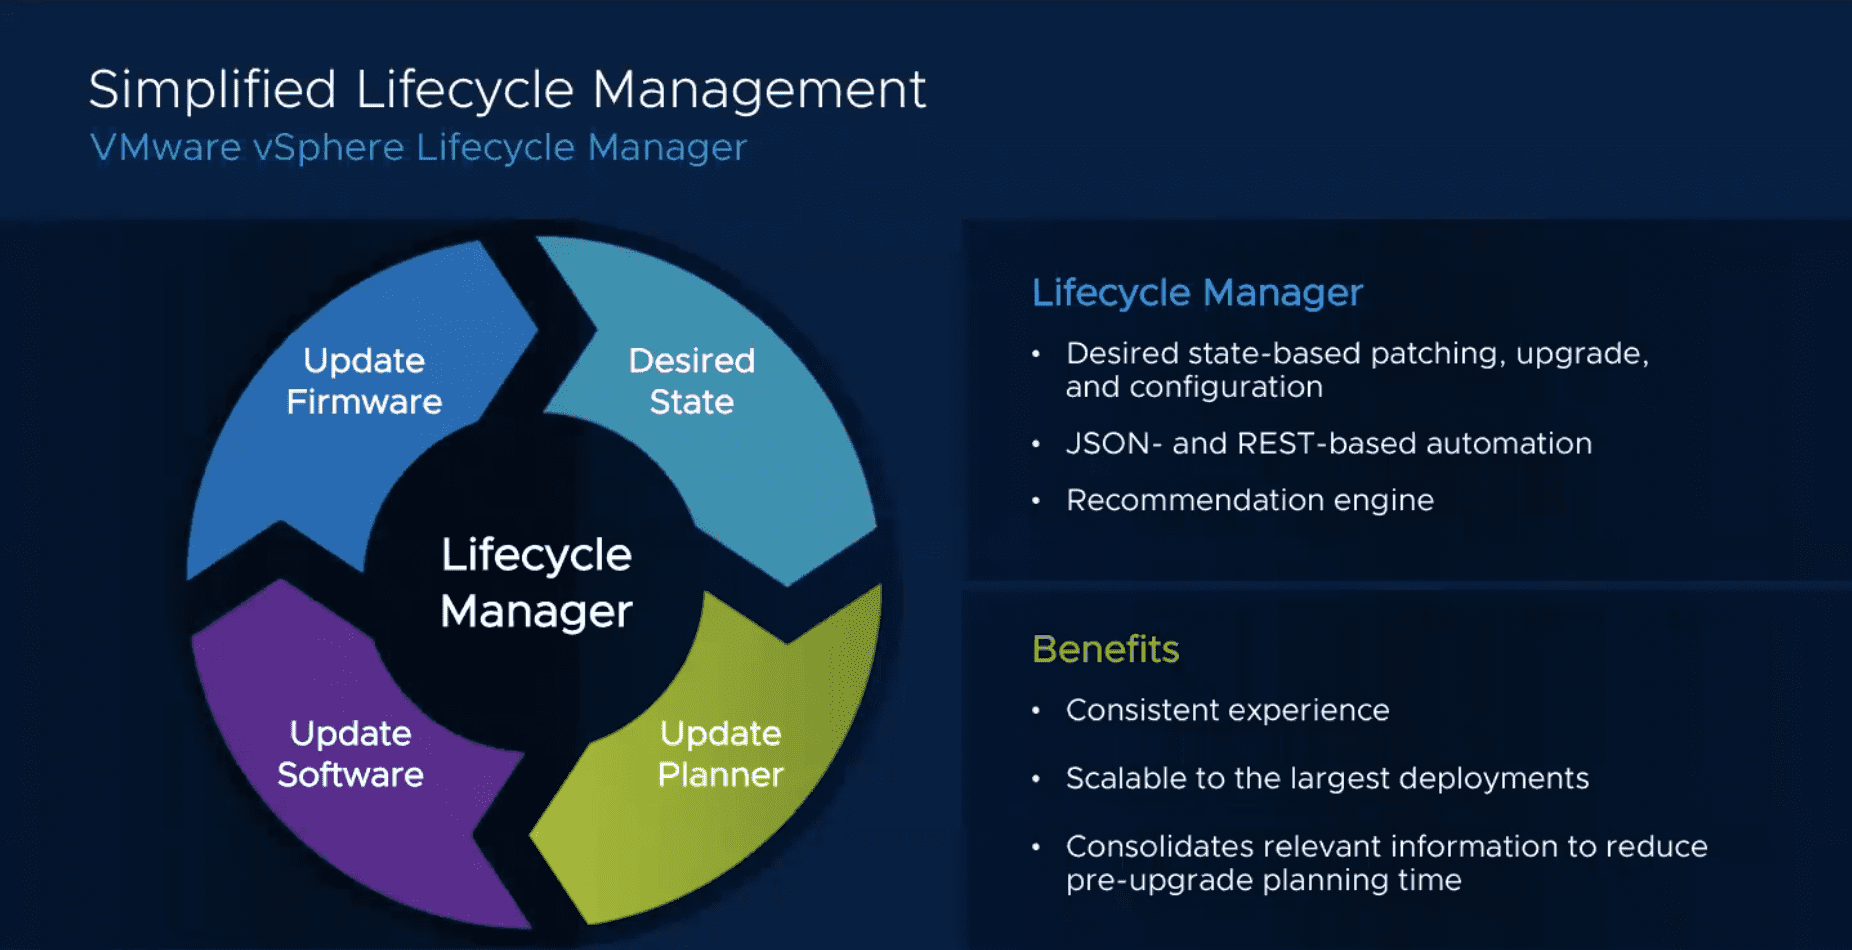 Simplified-lifecycle-management-is-included-in-VMware-vSphere-7